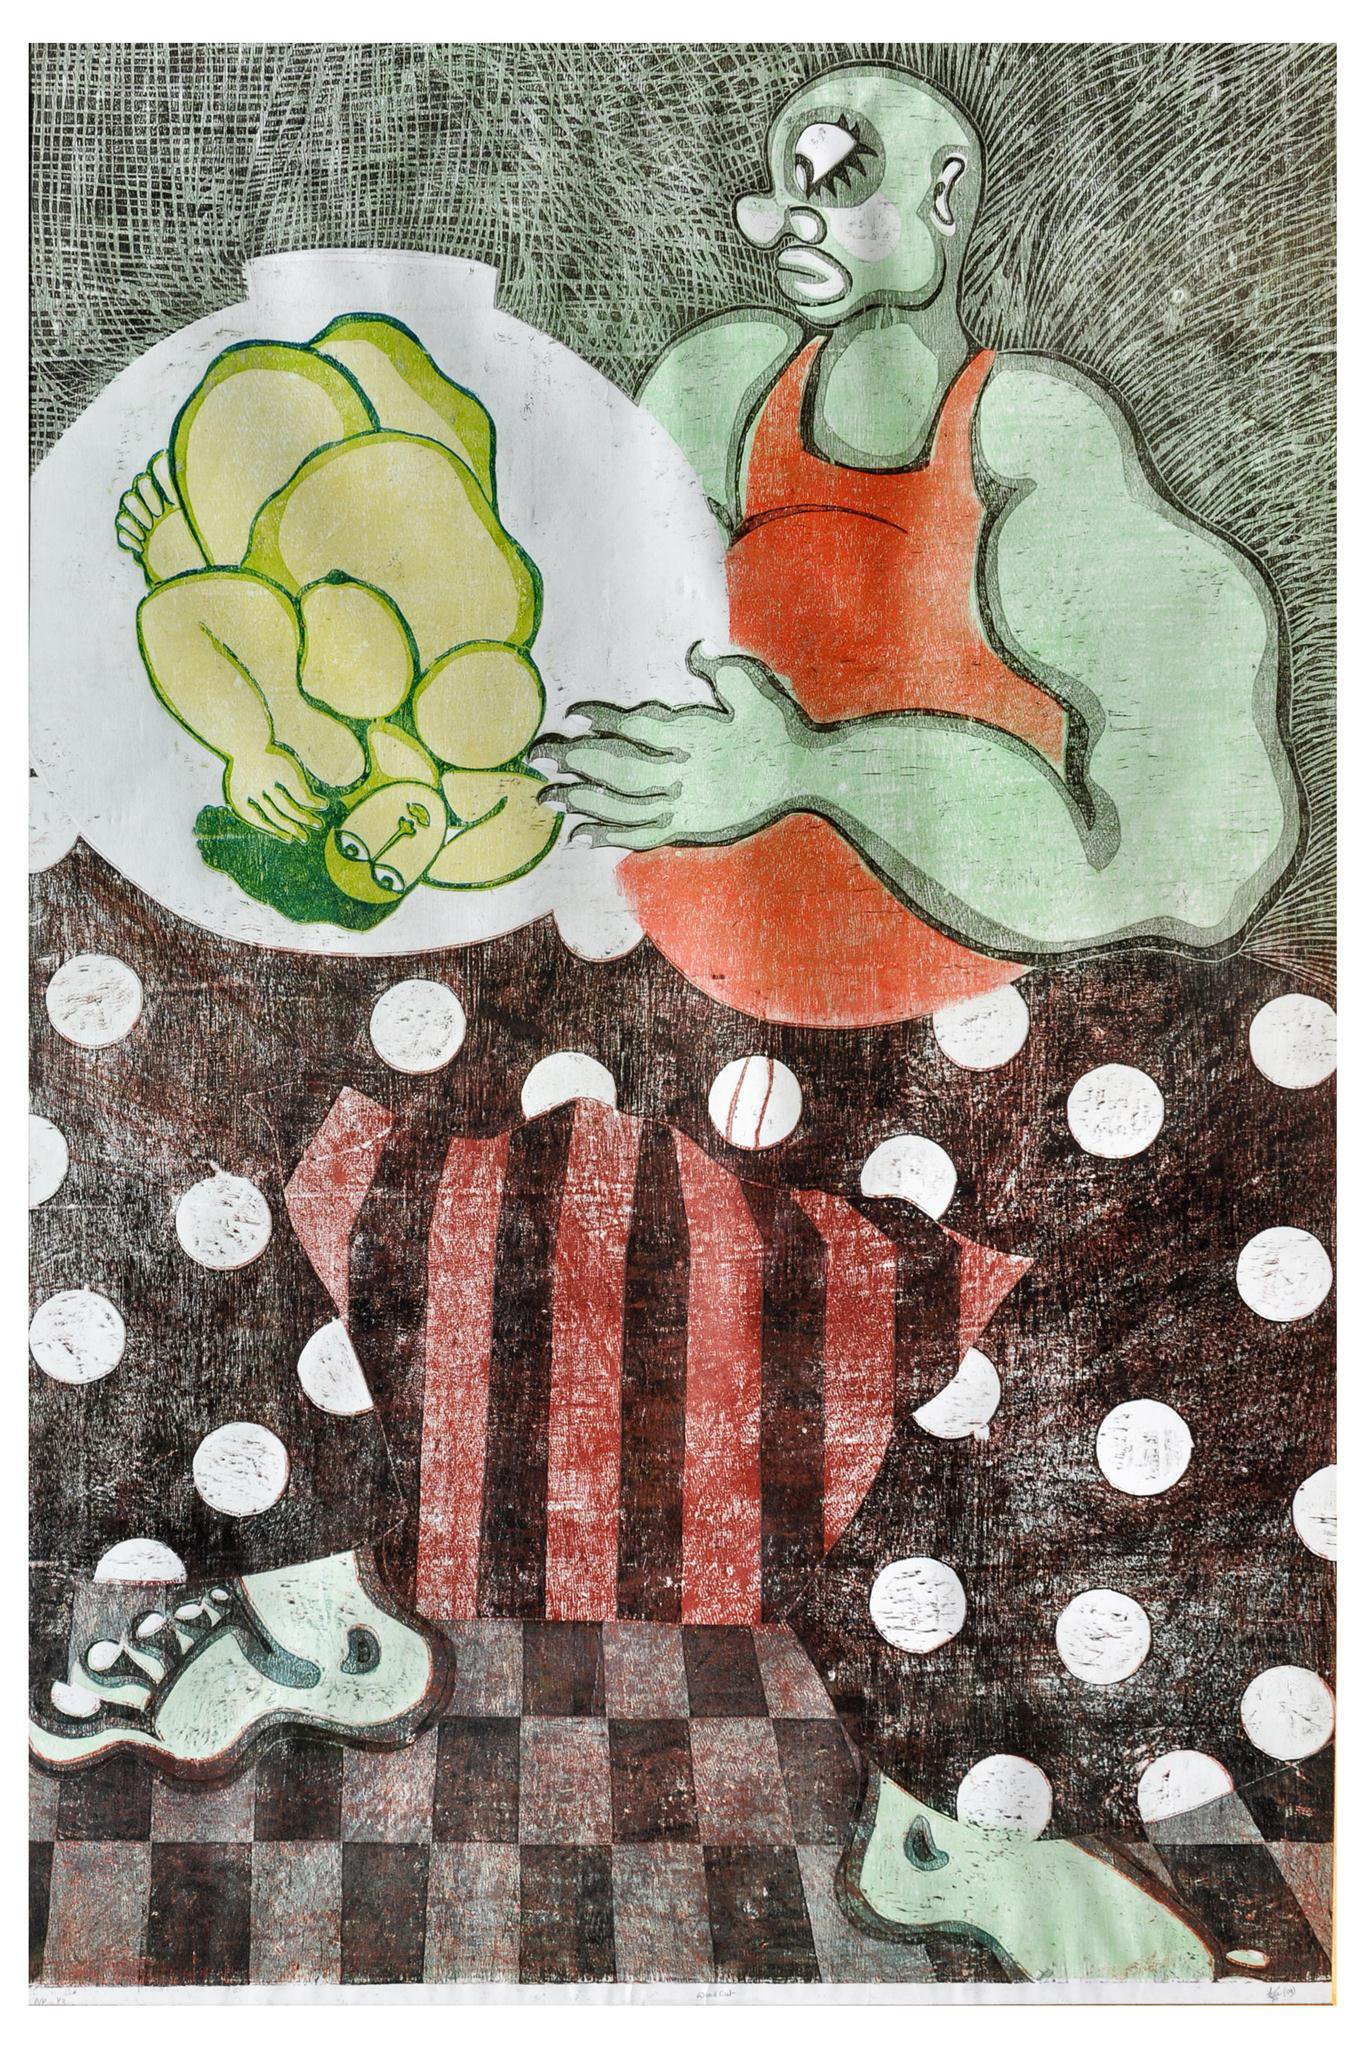 Fantastique  , 2010   Woodcut, Monoprint   48 x 60 in.